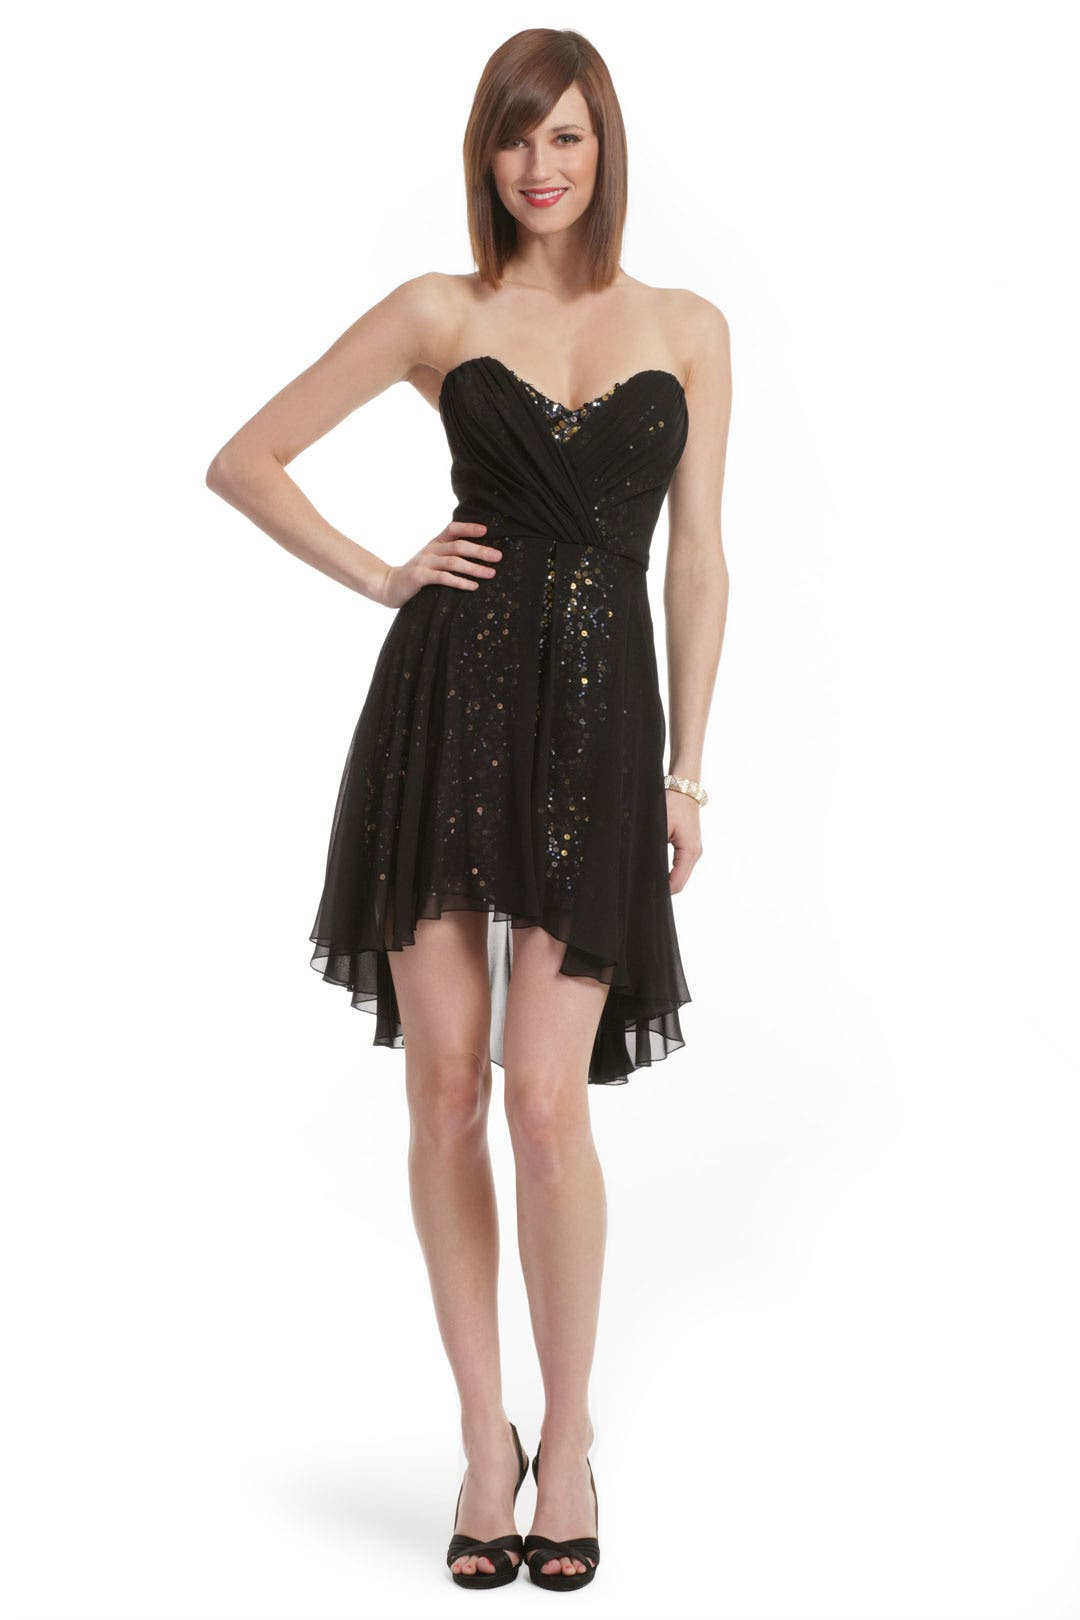 Take A Twirl Dress By Mark Amp James By Badgley Mischka For